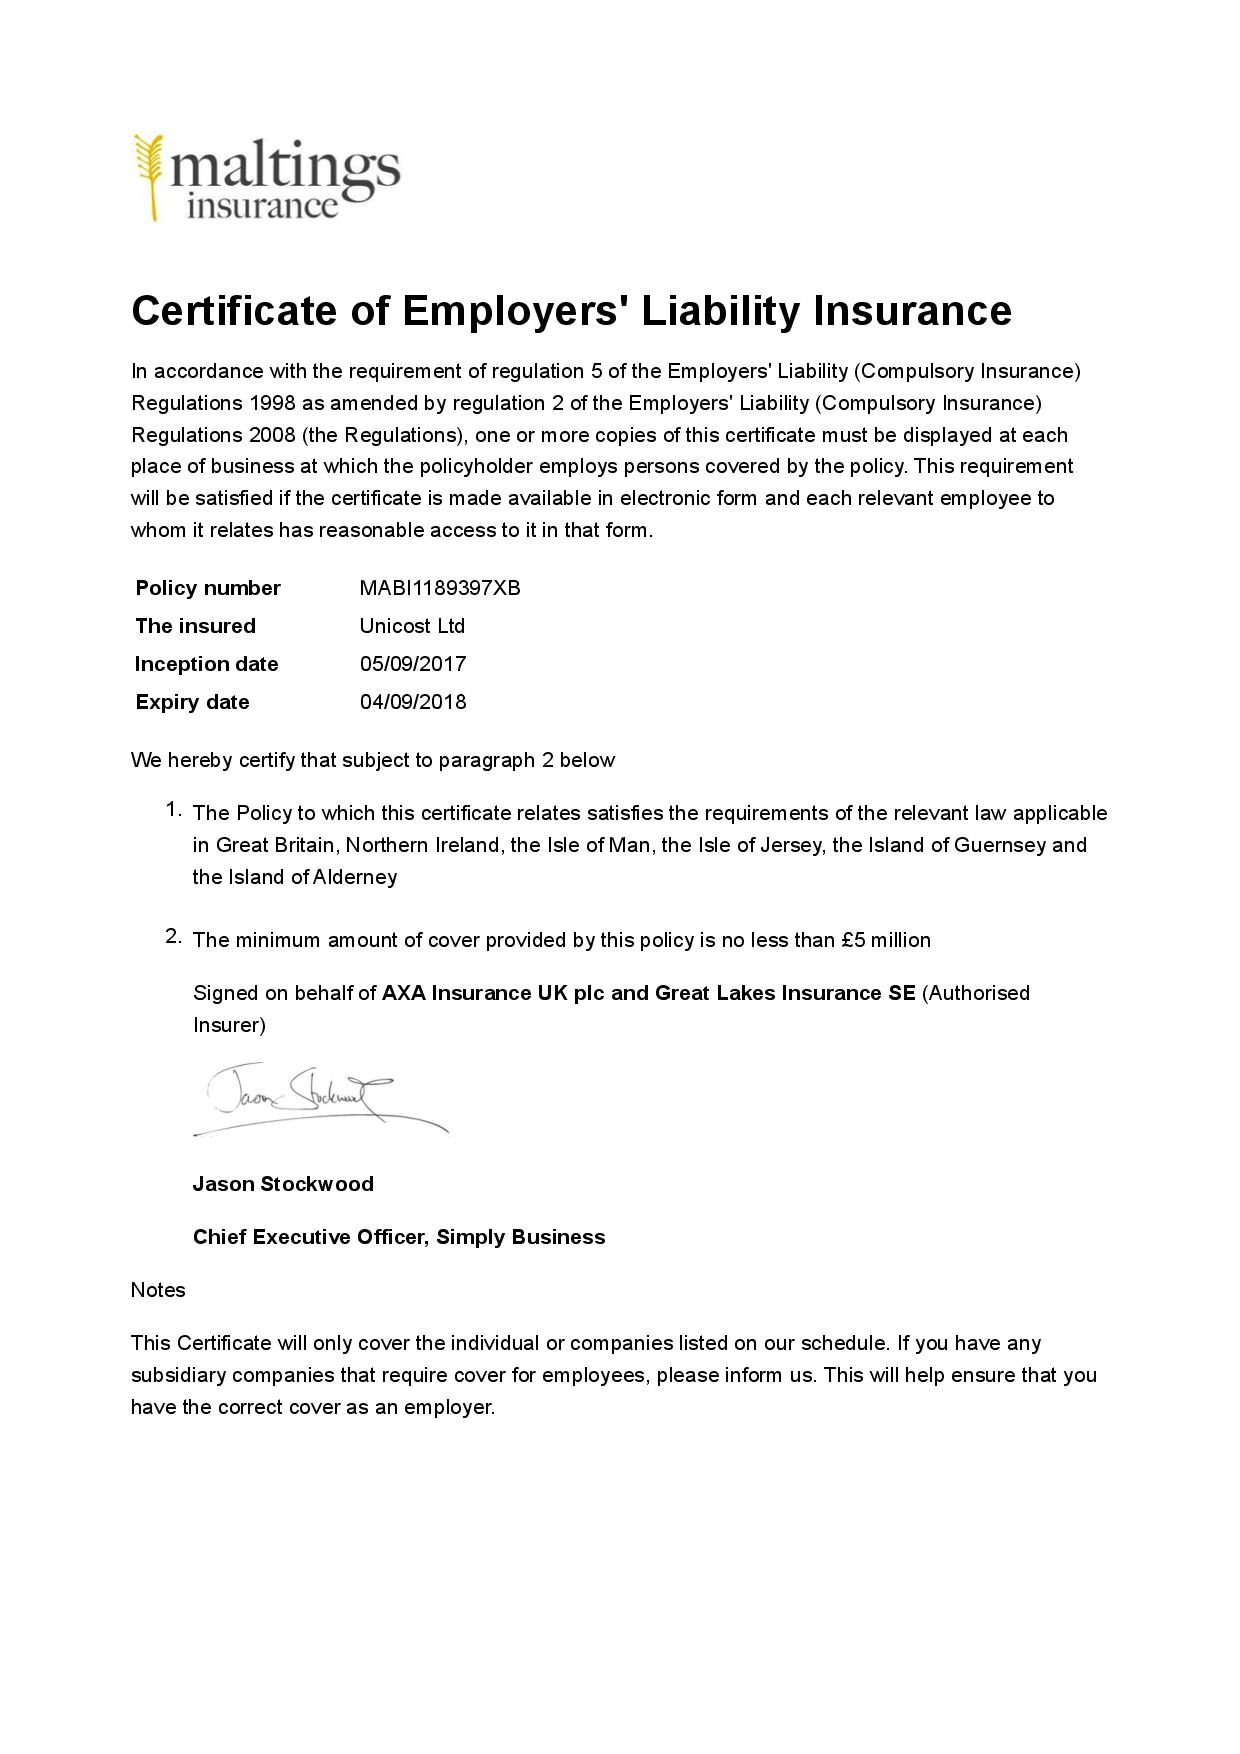 MABI1189397XB-Unicost Ltd-Business-Certificate of el insurance-page-001